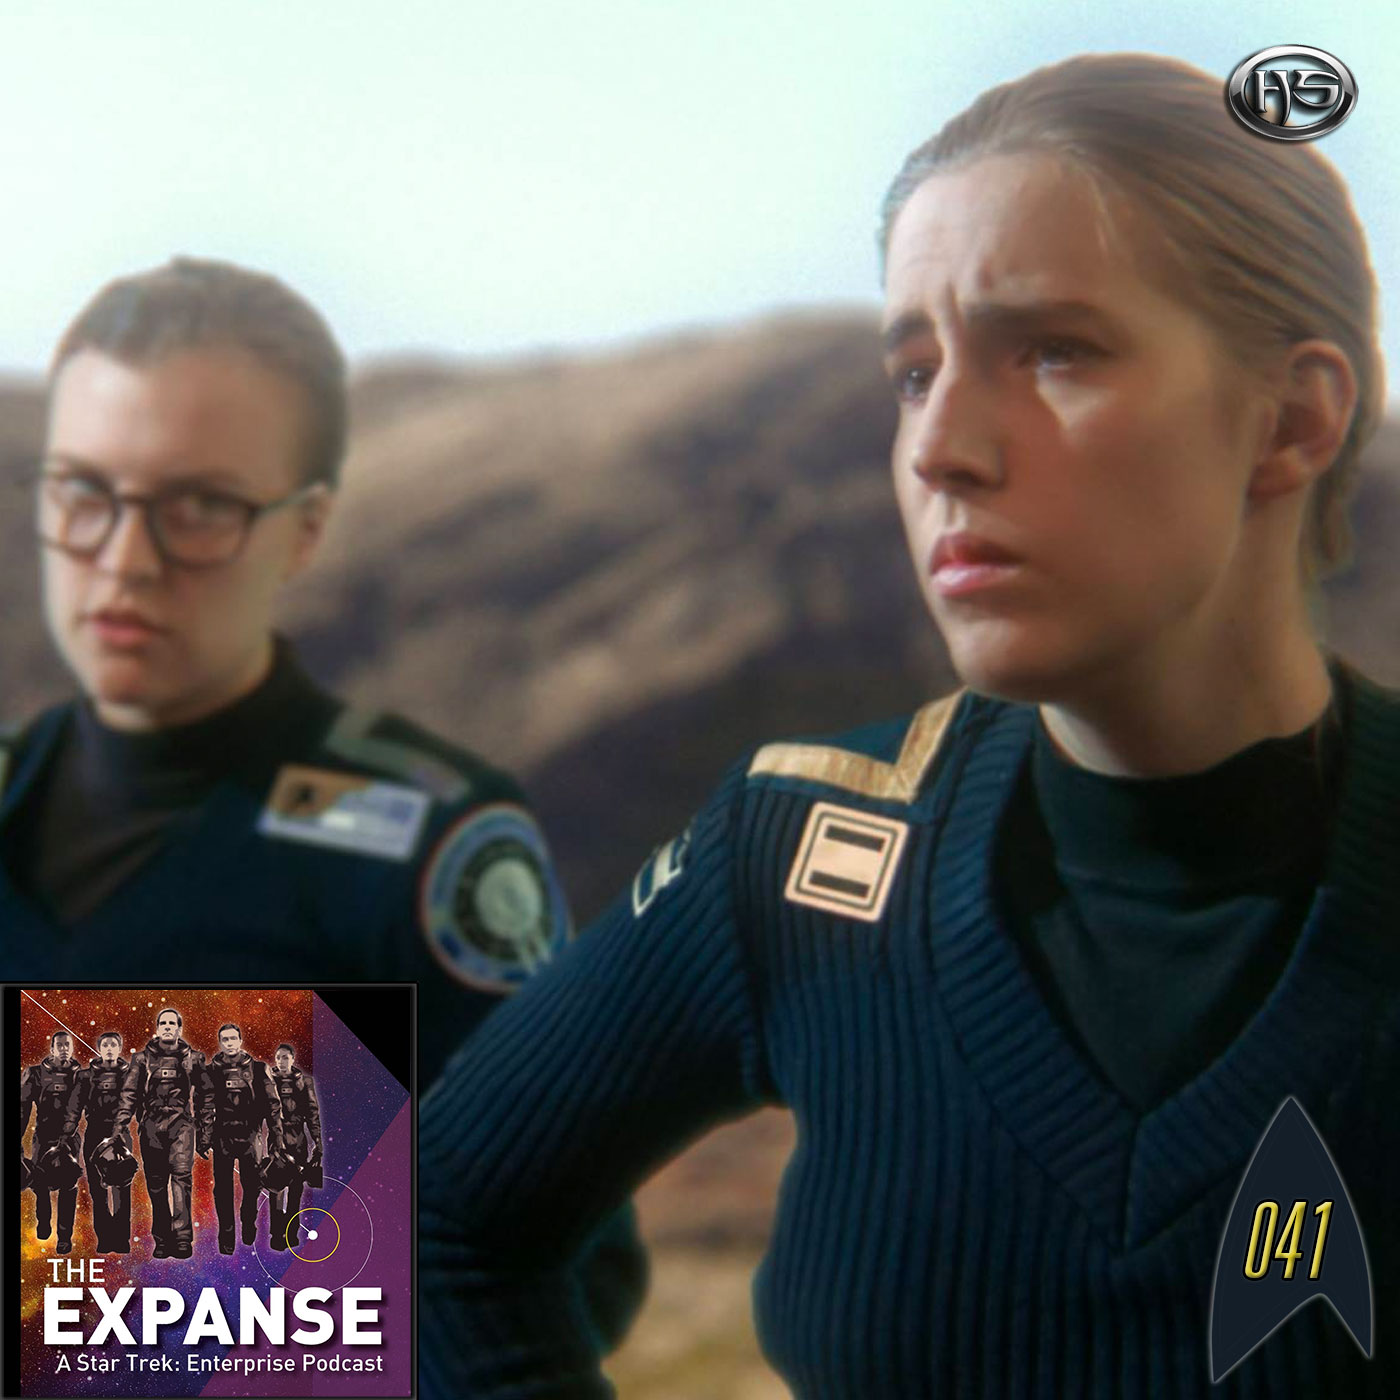 The Expanse Episode 41